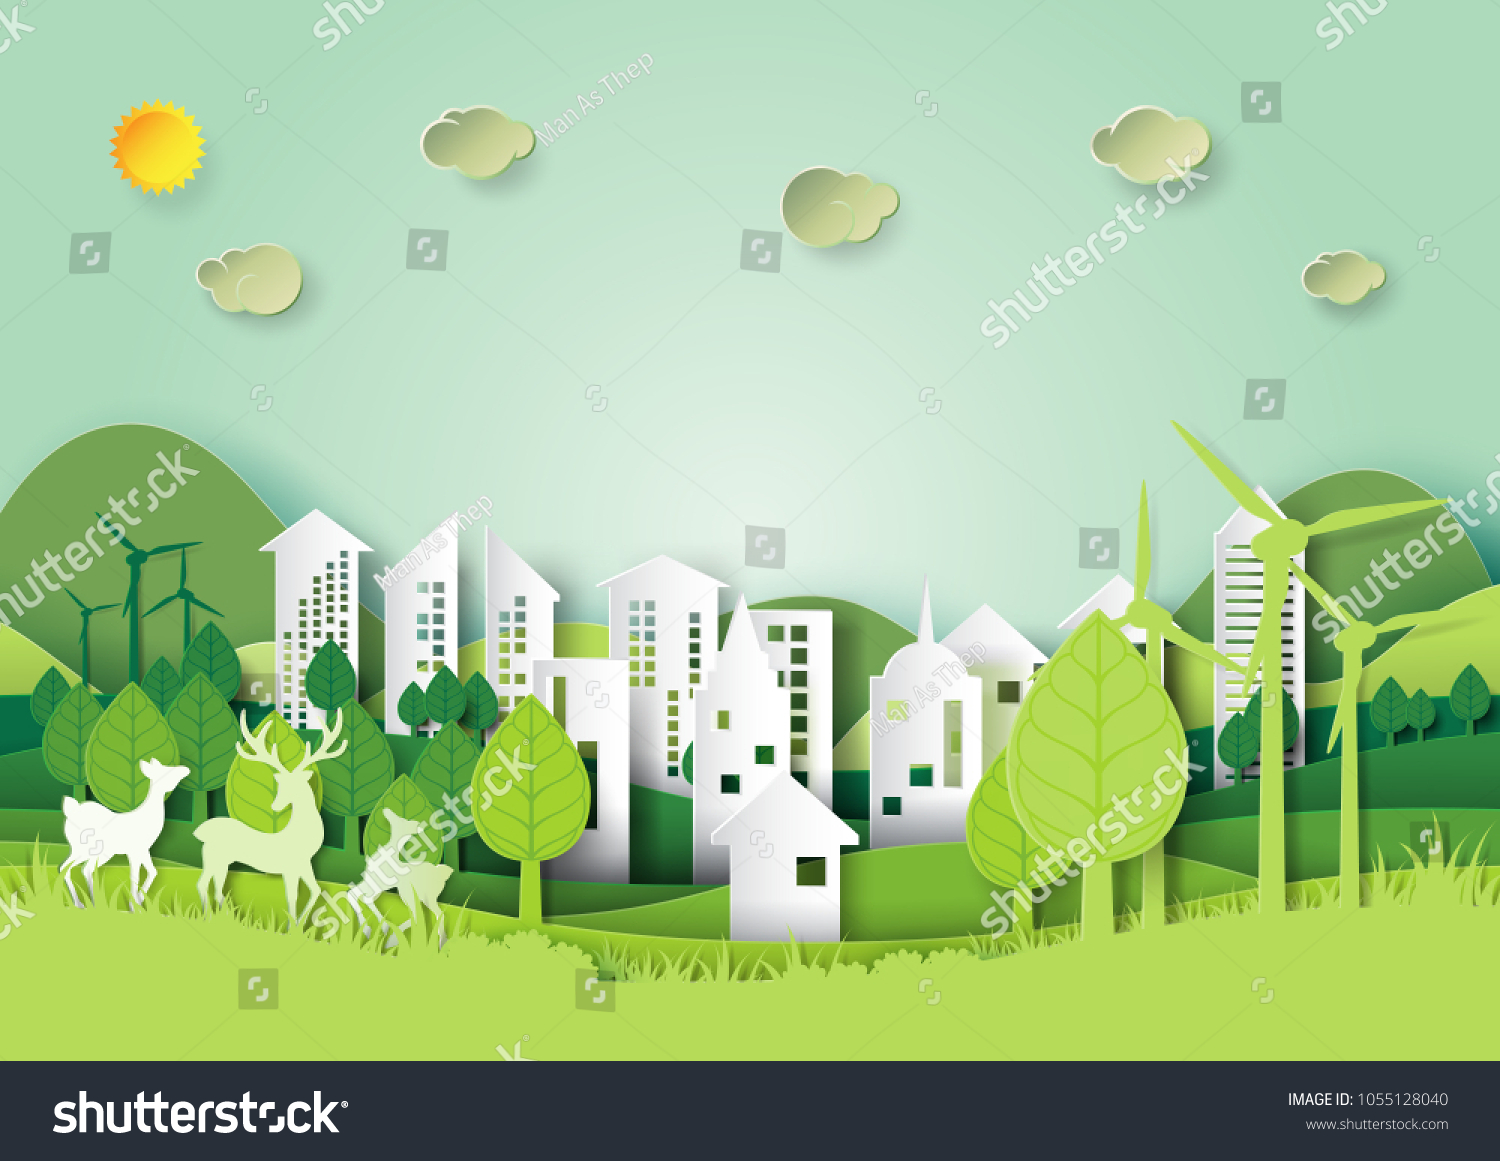 Ecology and environment conservation concept.Eco green city and urban forest landscape for green energy paper art style.Vector illustration.